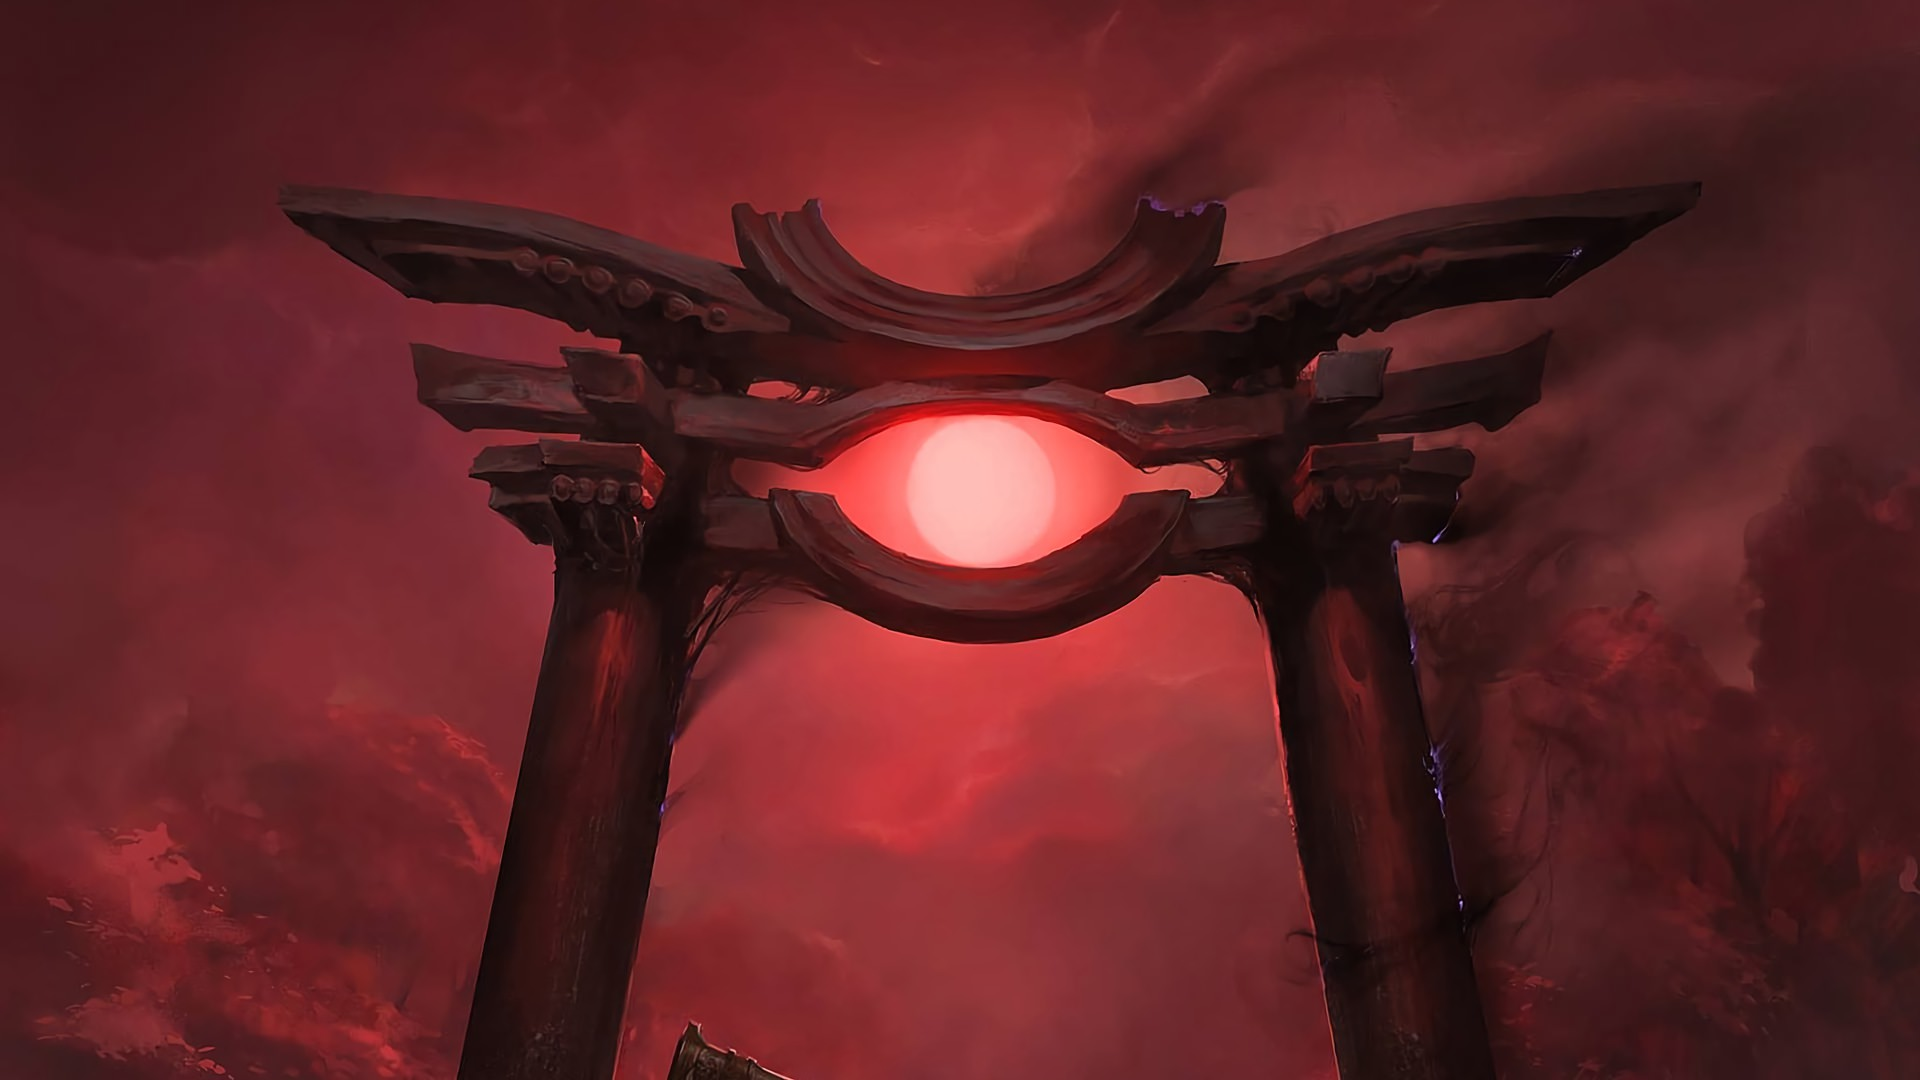 mtg blood moon, red moon backgrounds